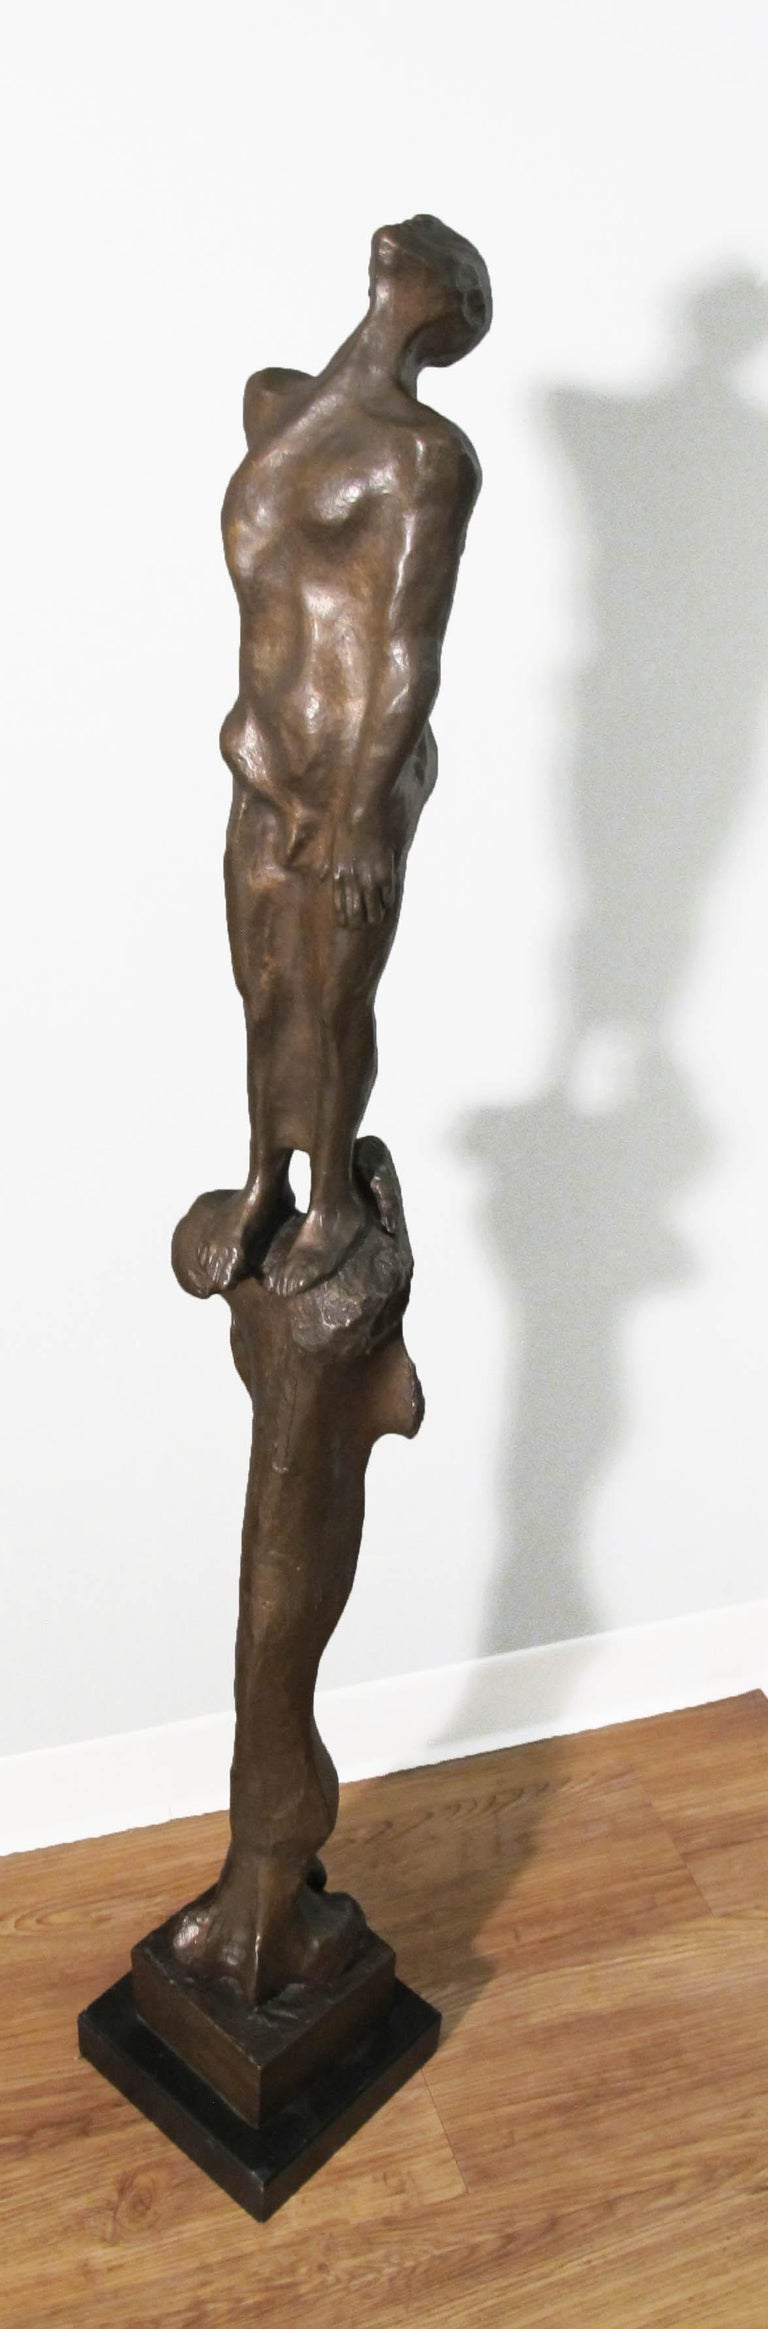 Stylite - Gold Figurative Sculpture by Michael Ayrton